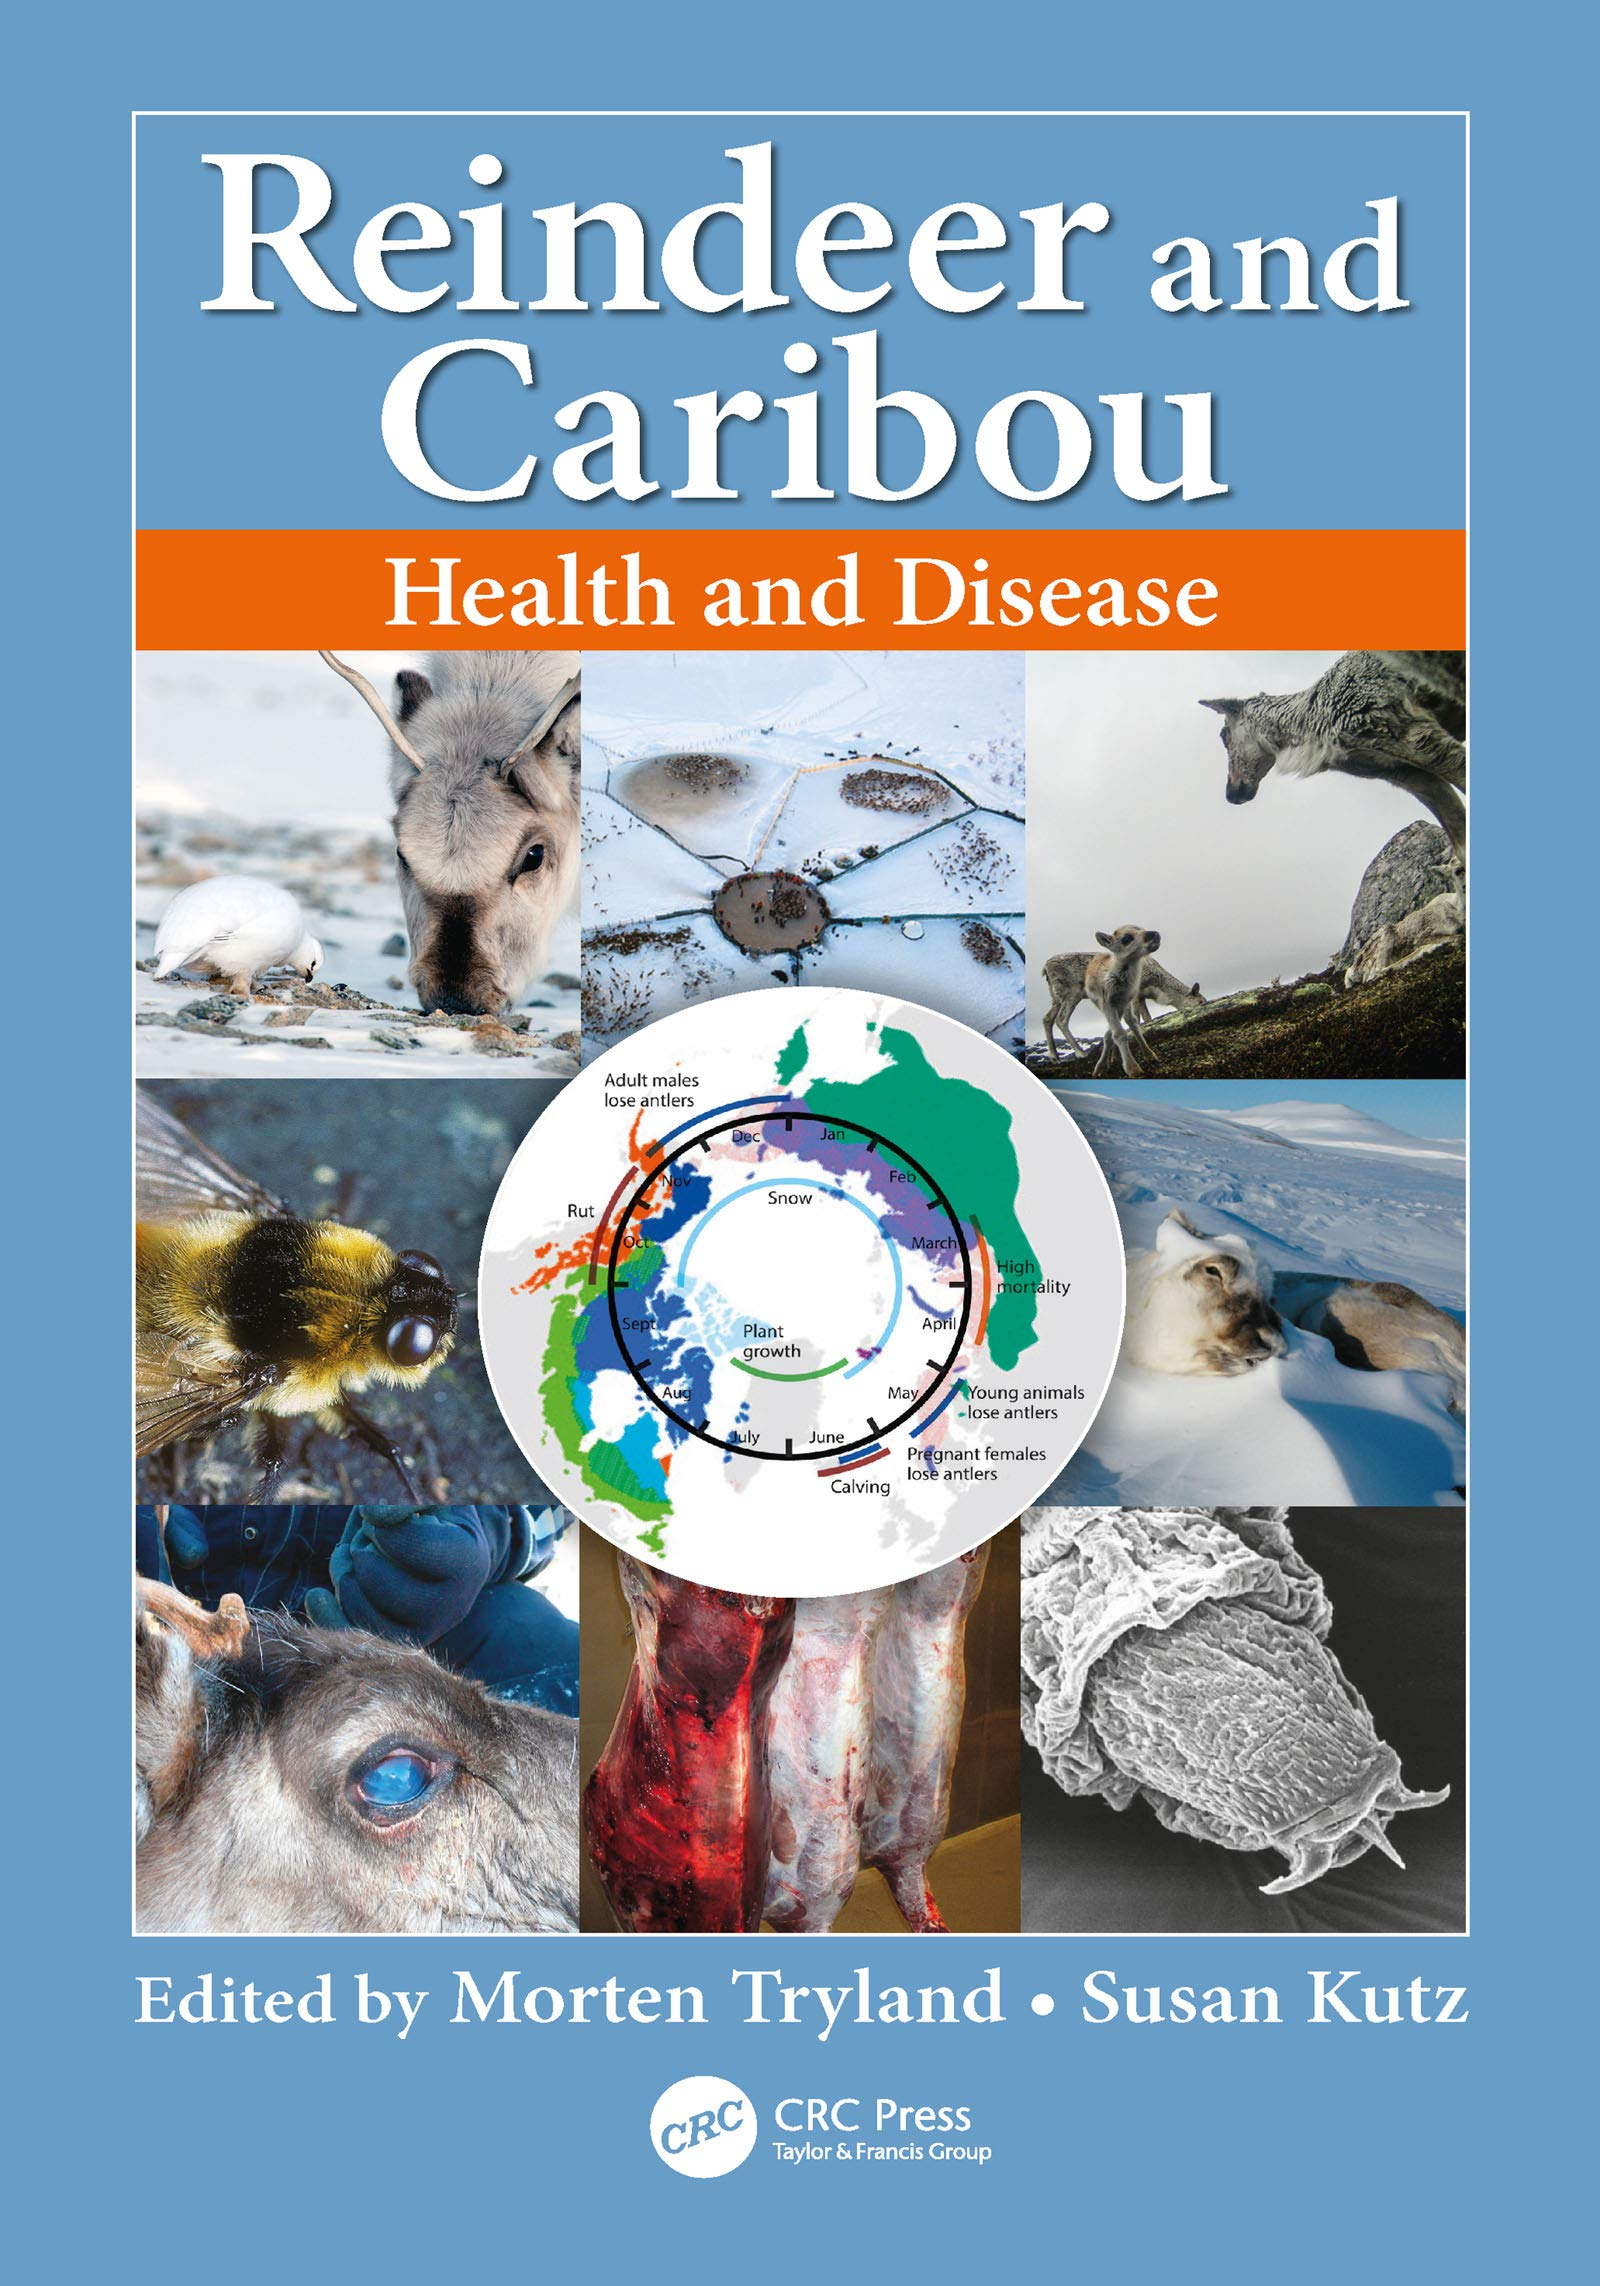 Image OfReindeer And Caribou: Health And Disease (English Edition)